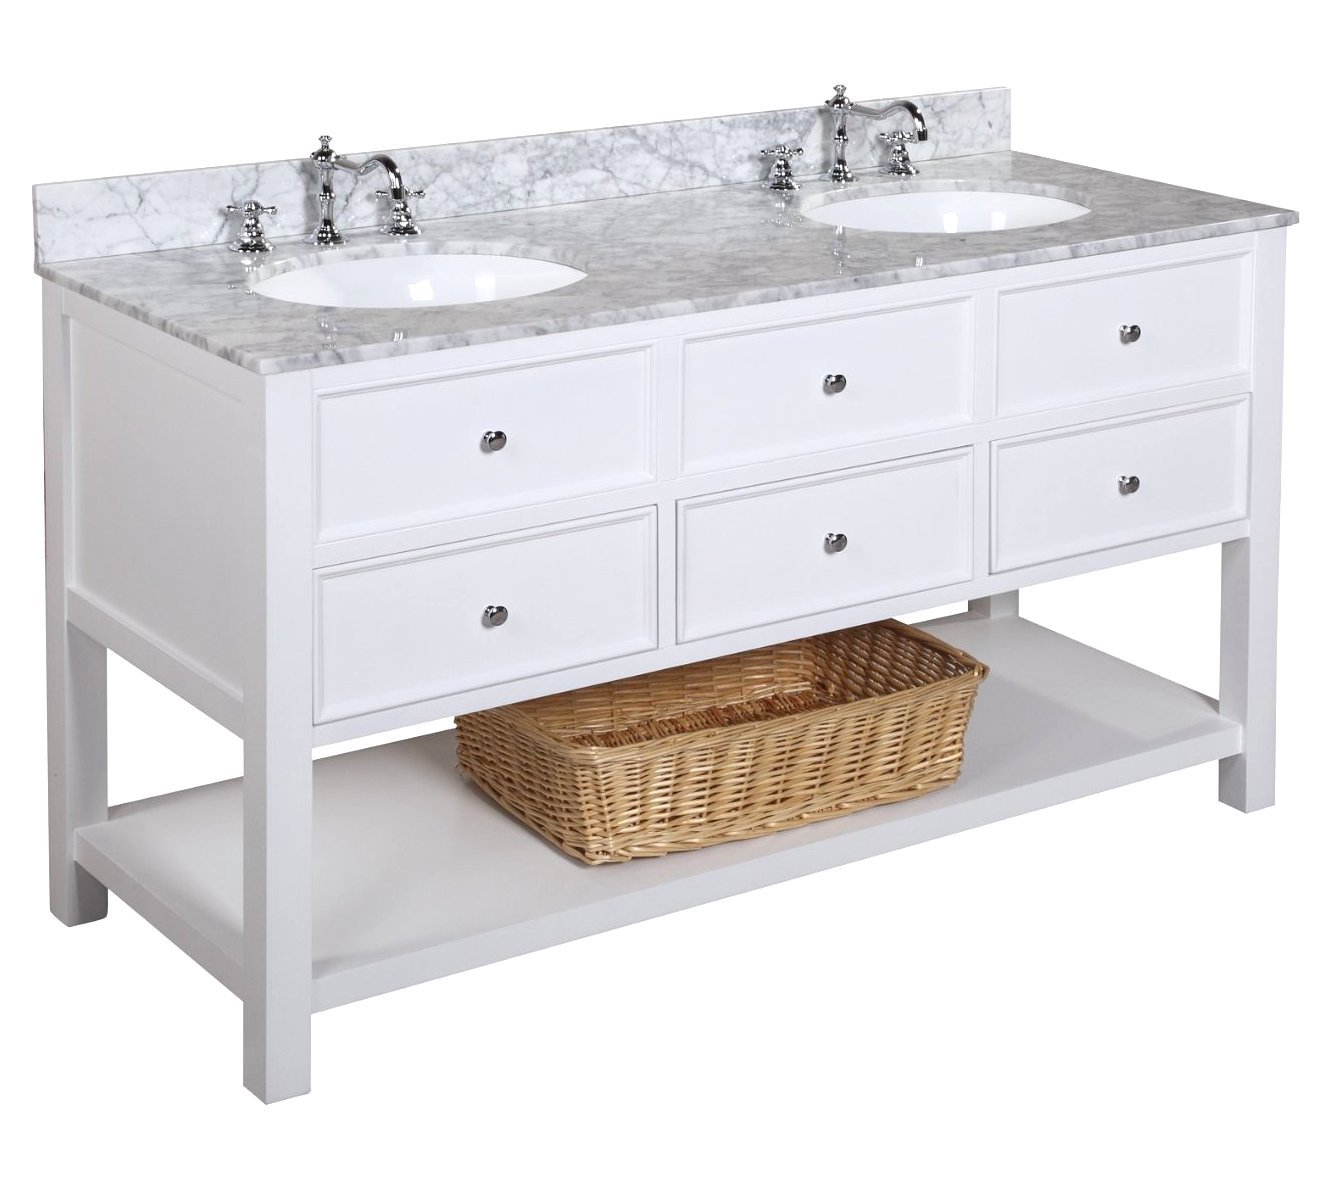 New Yorker Kitchen Cabinets New Yorker 60 Double Bathroom Vanity Carrara White Amazoncom